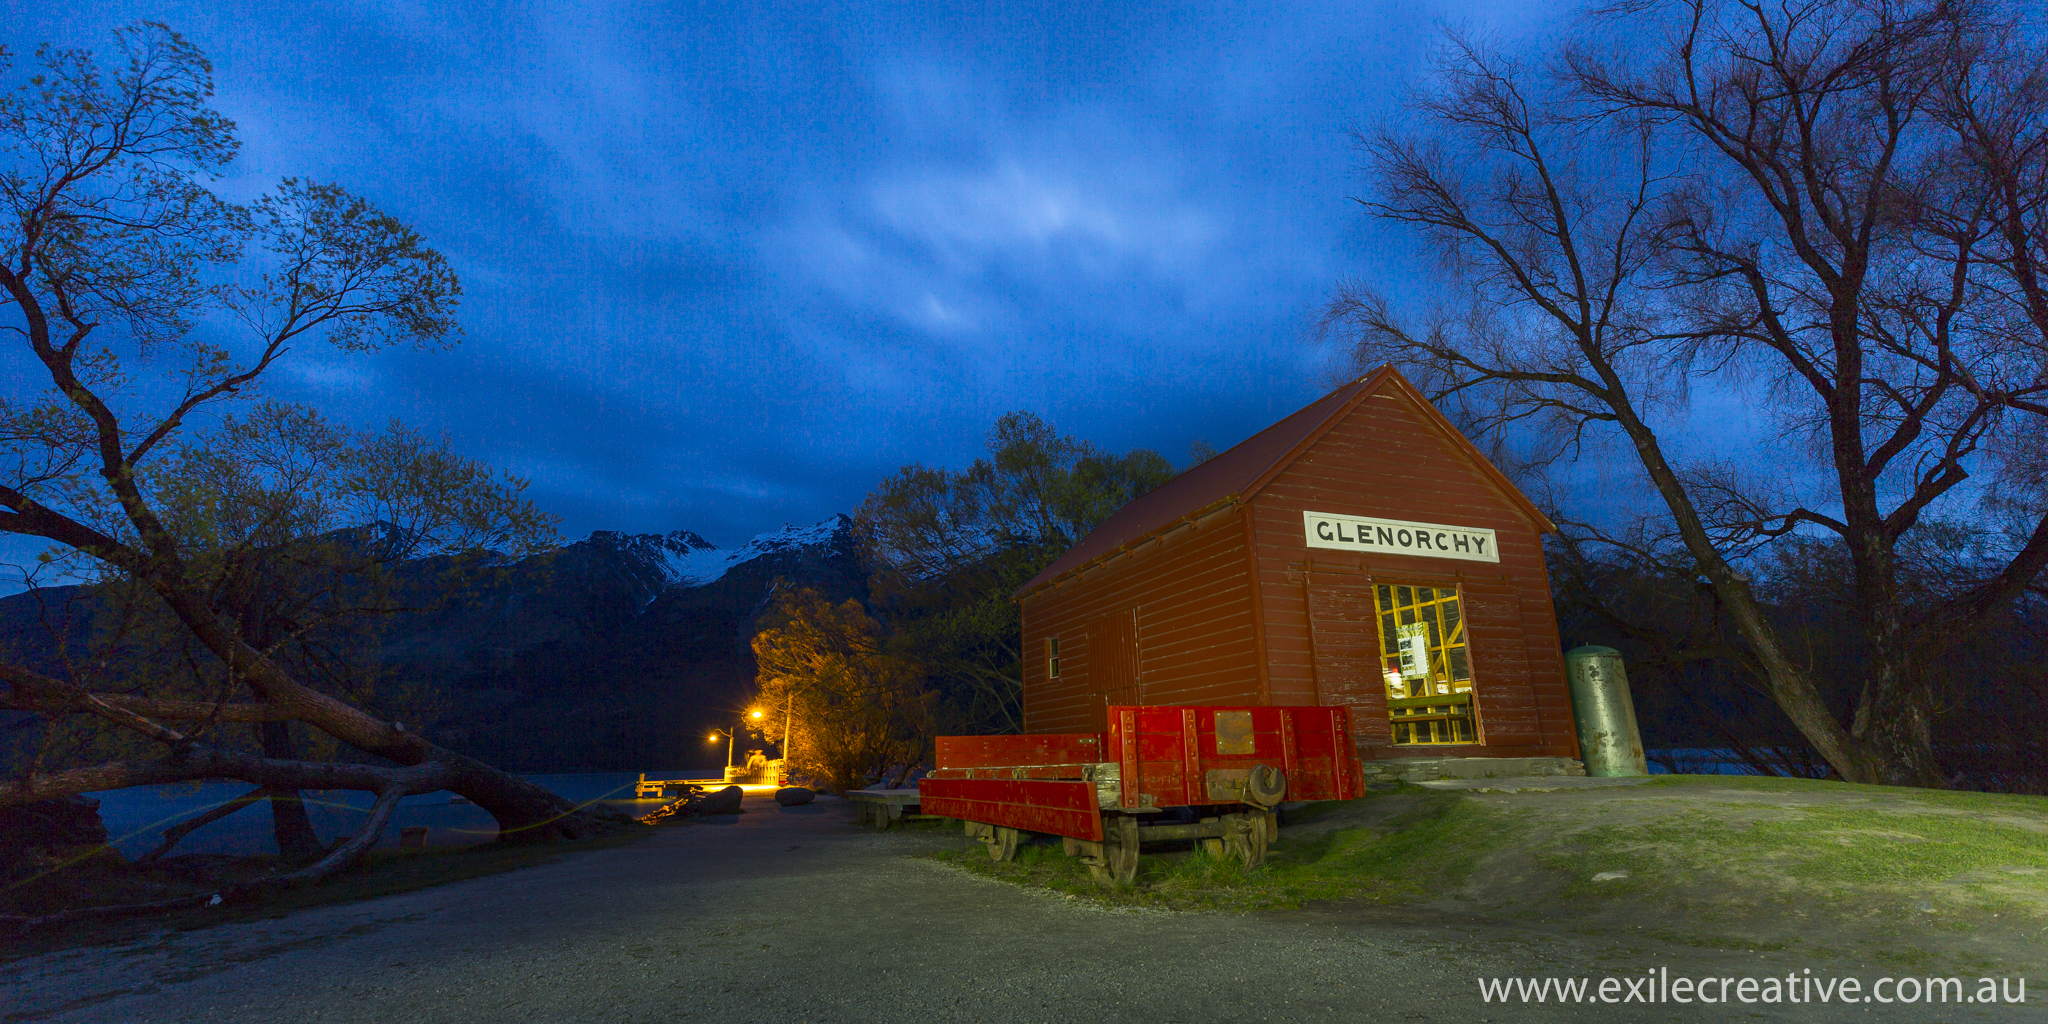 Back in Glenorchy at the wharf.  A little light painting.  Canon 5Dmiii, 16-35L iii @ 16mm, ISO100, f/4.5, 30s, B+W CPL and a torch